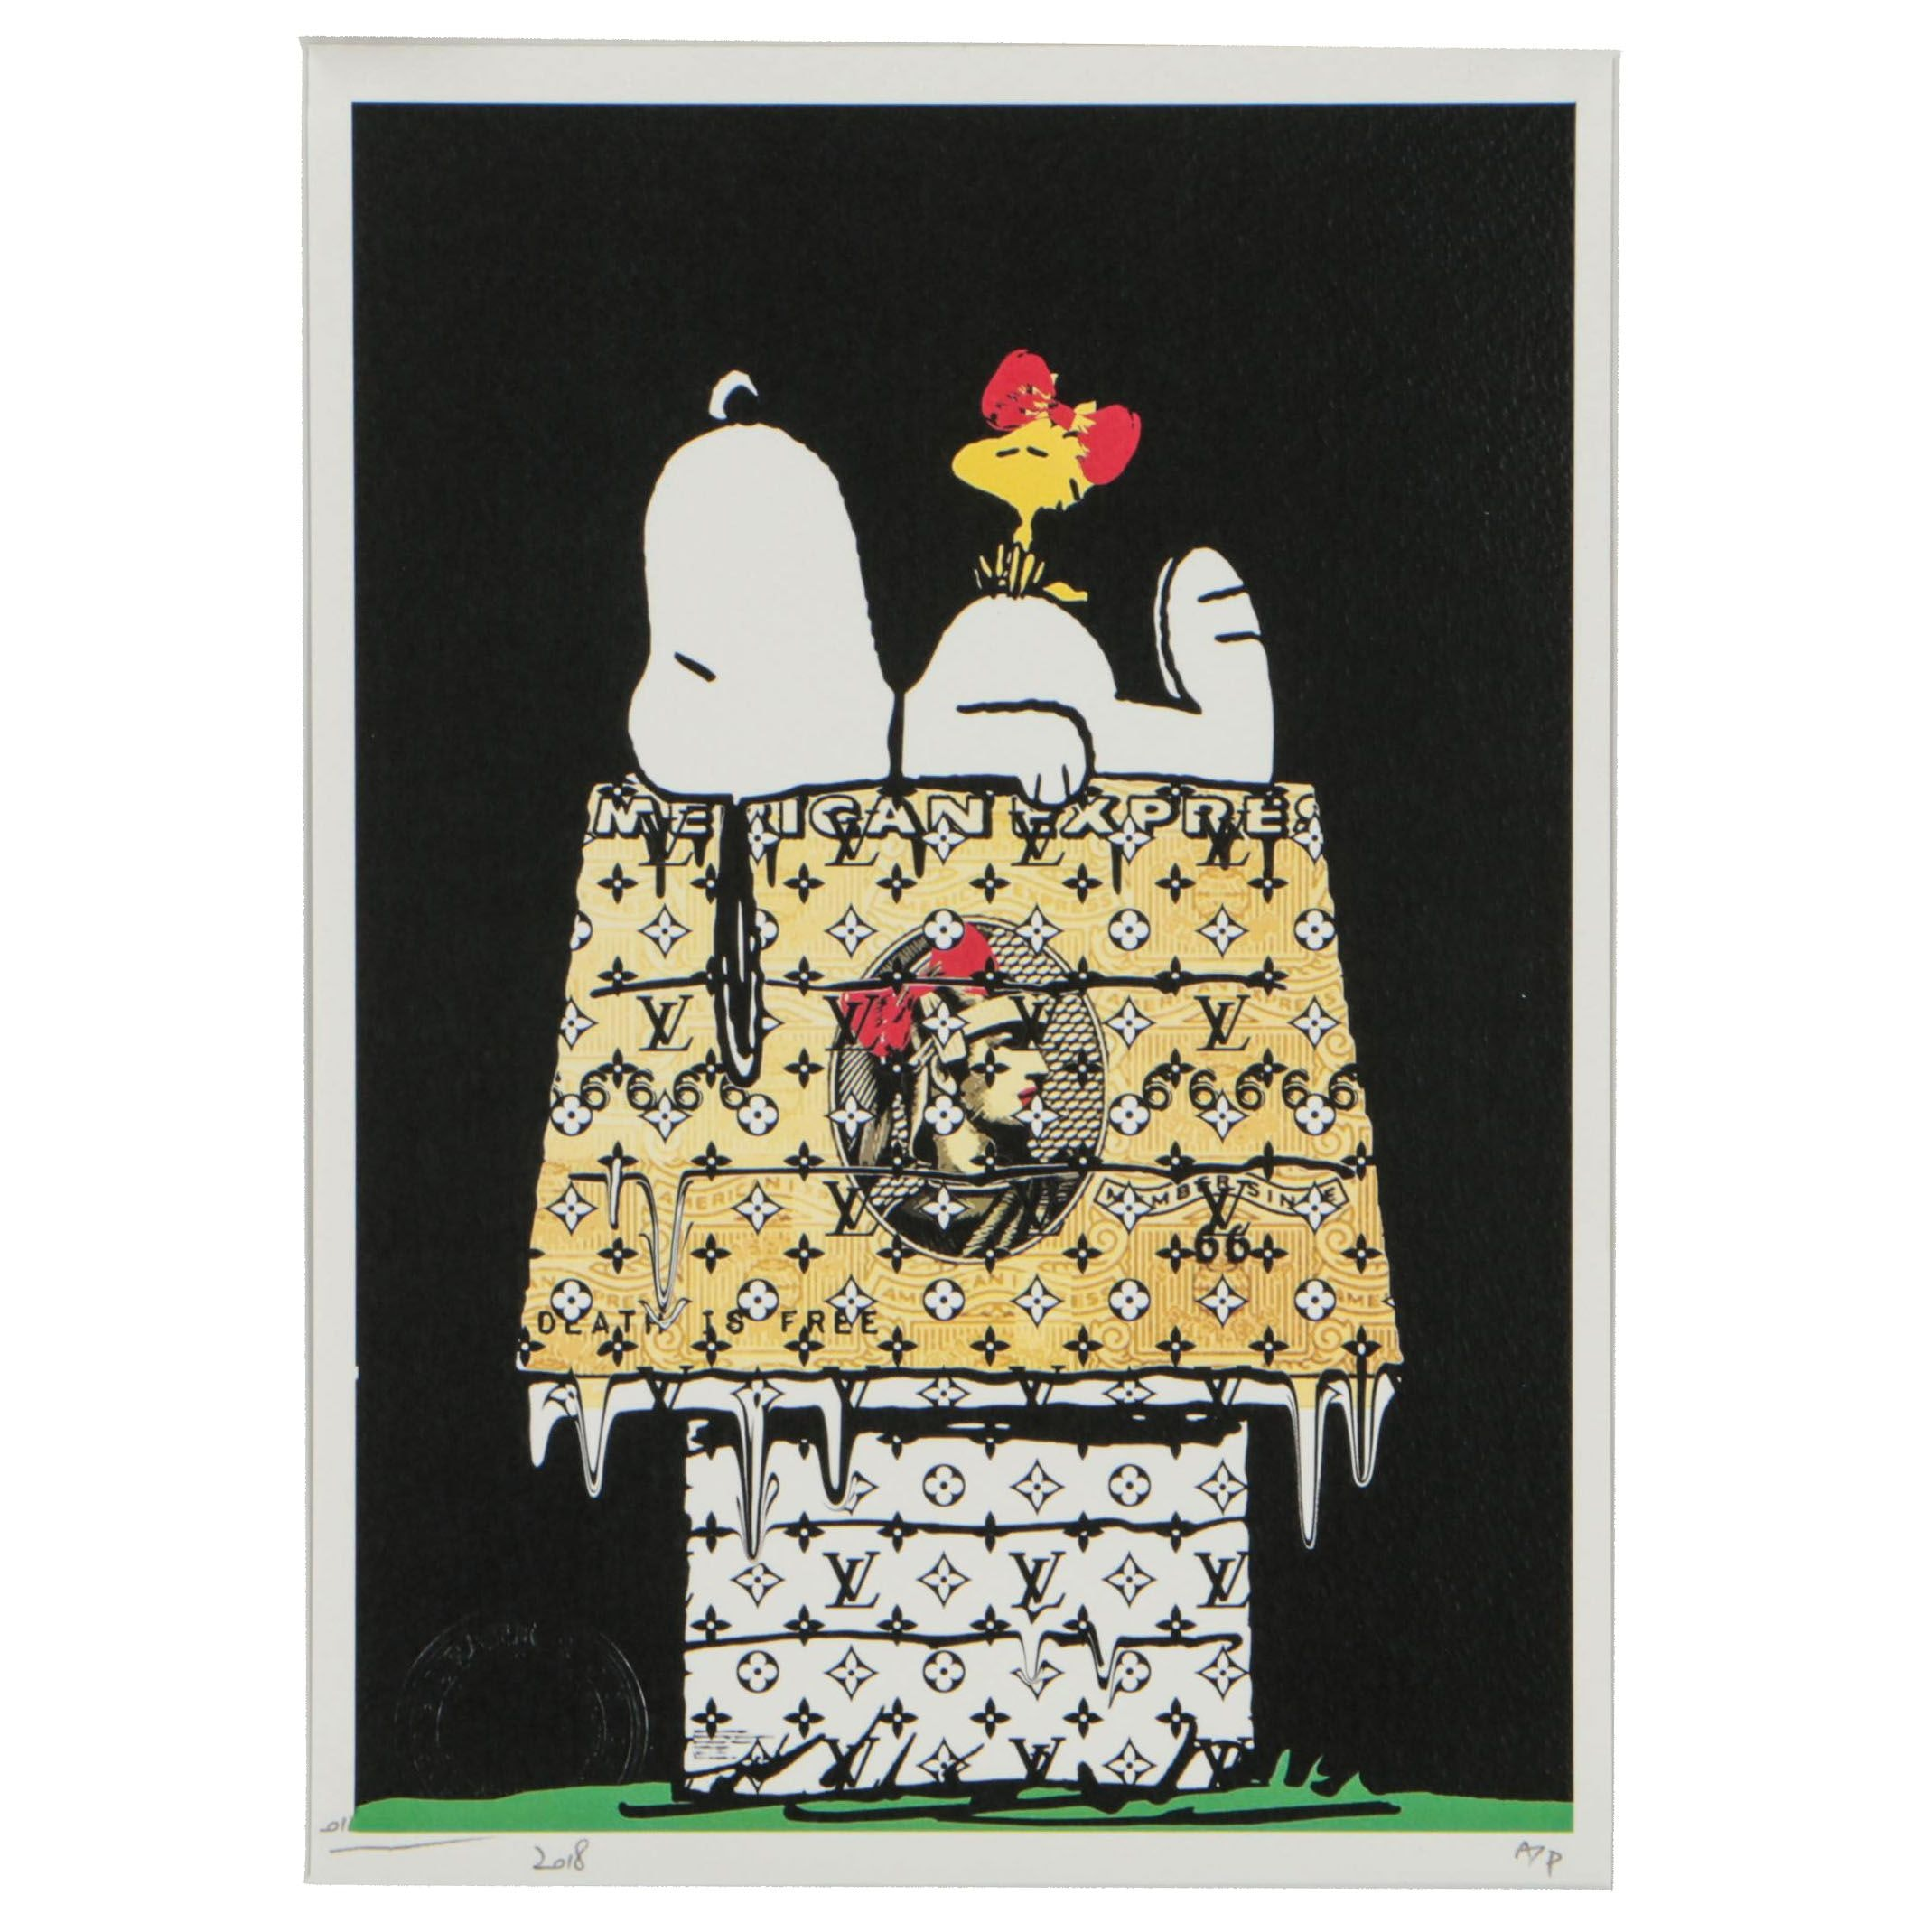 Death NYC 2018 Offset Lithograph of Snoopy